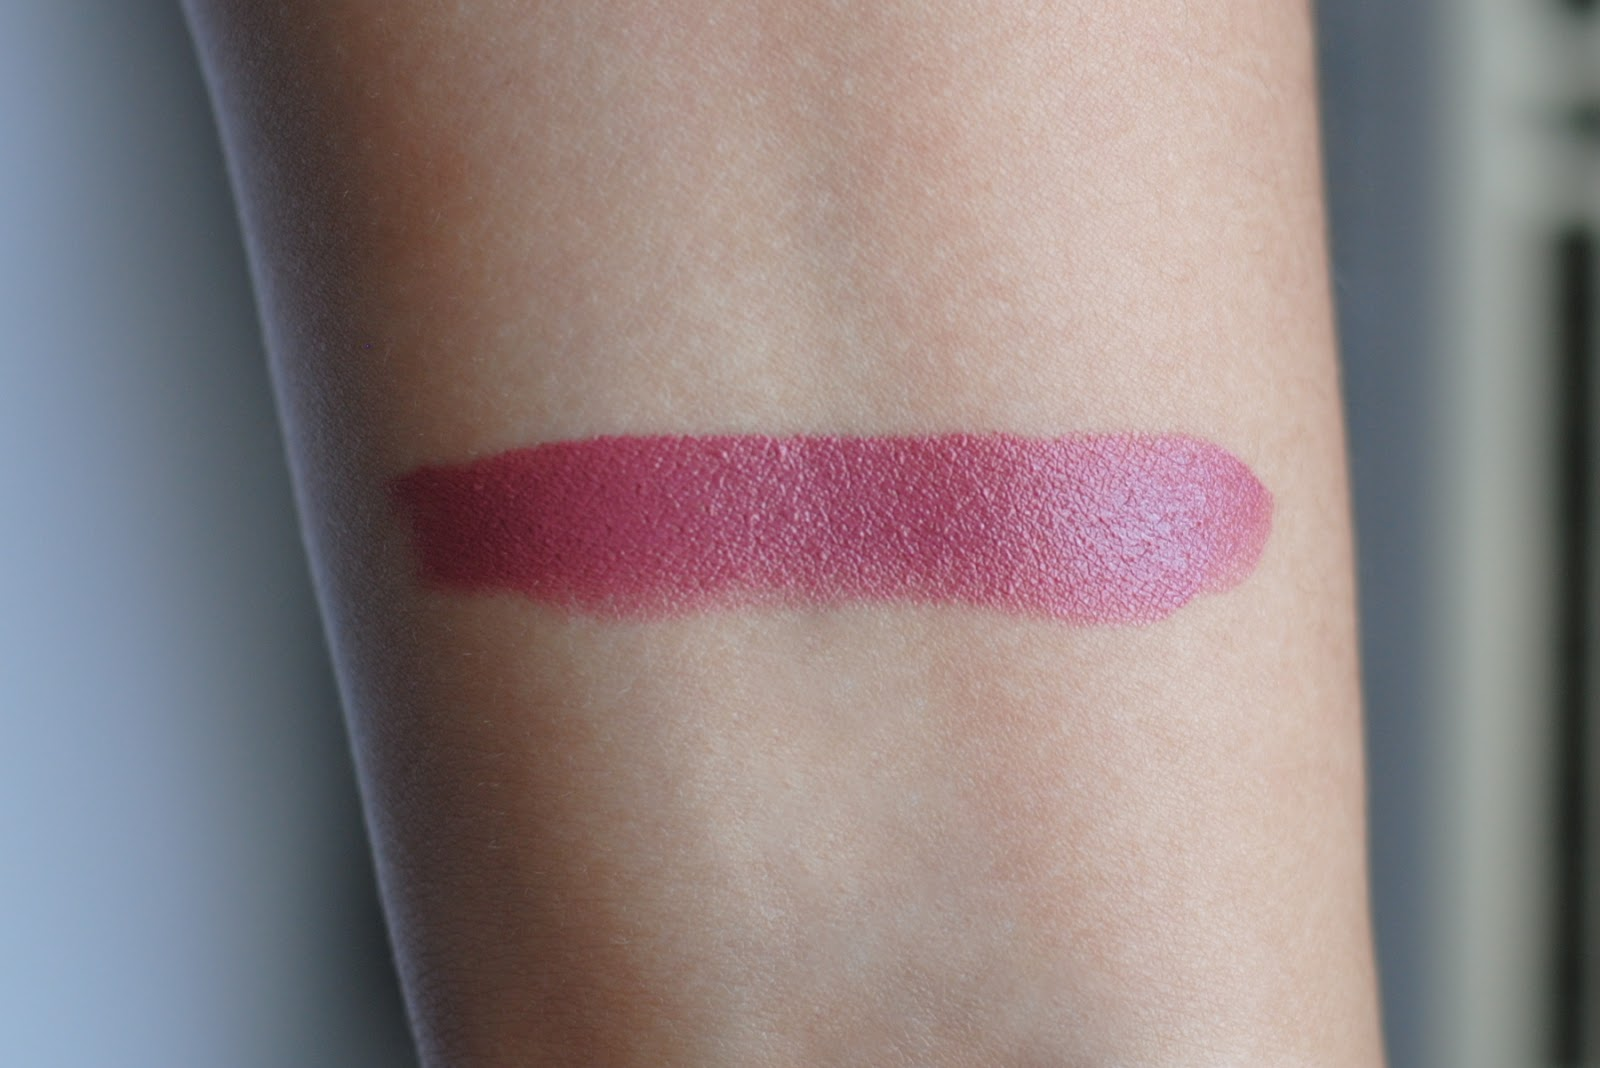 bobbi brown rich lip color 25 desert rose swatches